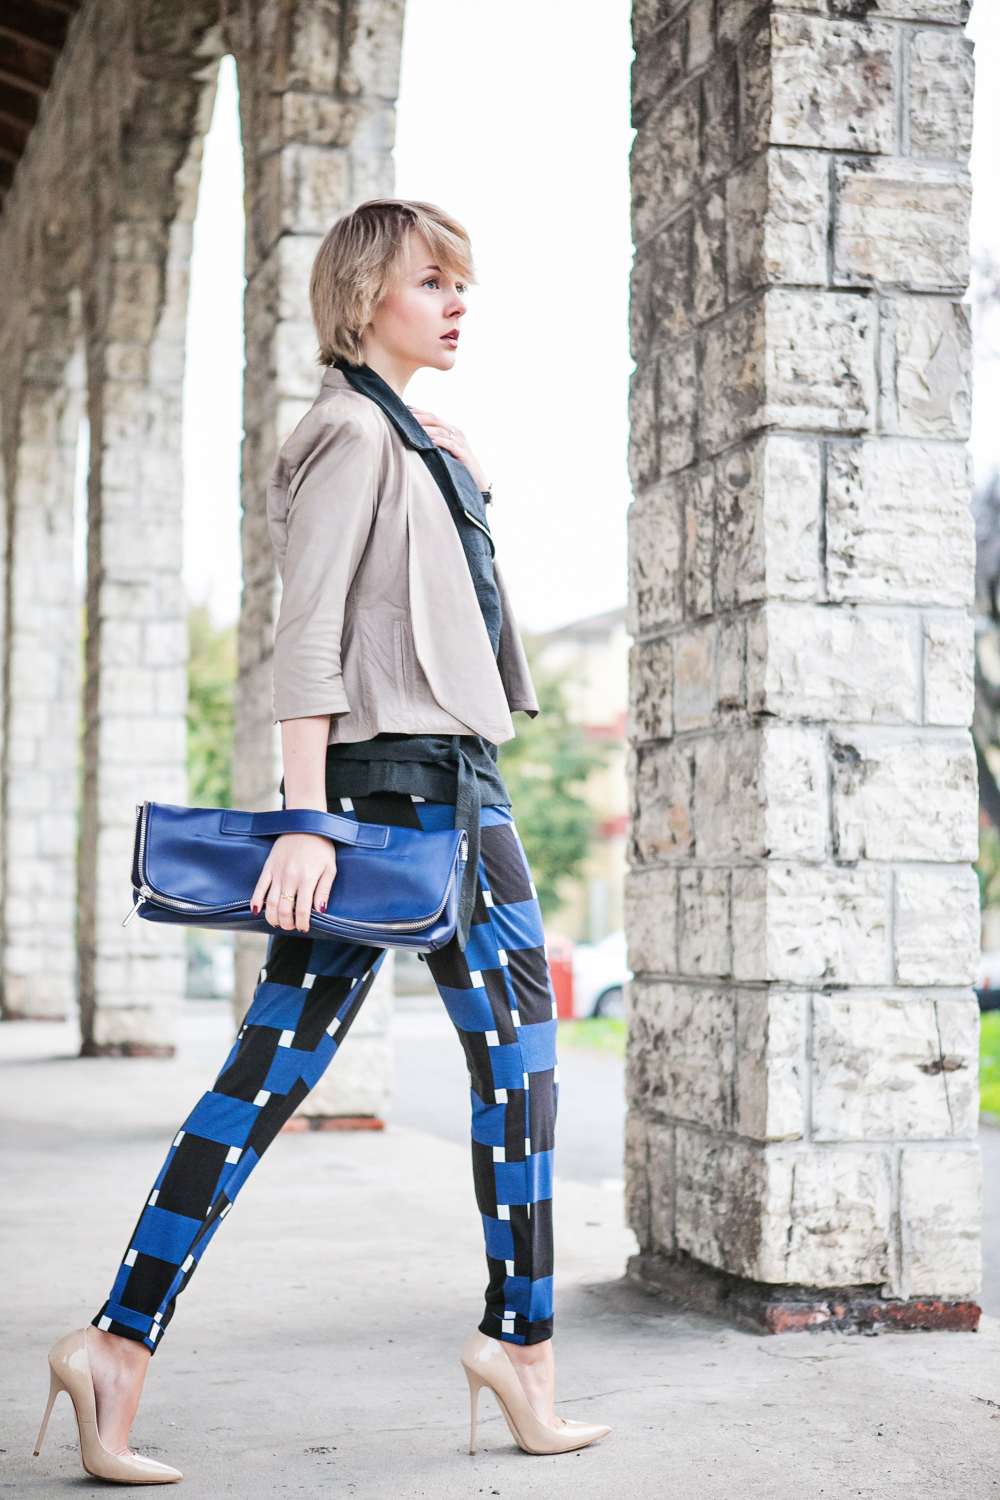 1darya kamalova thecablook fashion blog russian blogger italy moda street style pixie short hair fashion blogger 3 1 PHIPPIP LIM MINUTE BAG NAVY asos pants as by df leather jacket chicwish vest jimmy choo anouk nude heels daniel wellington watches-14